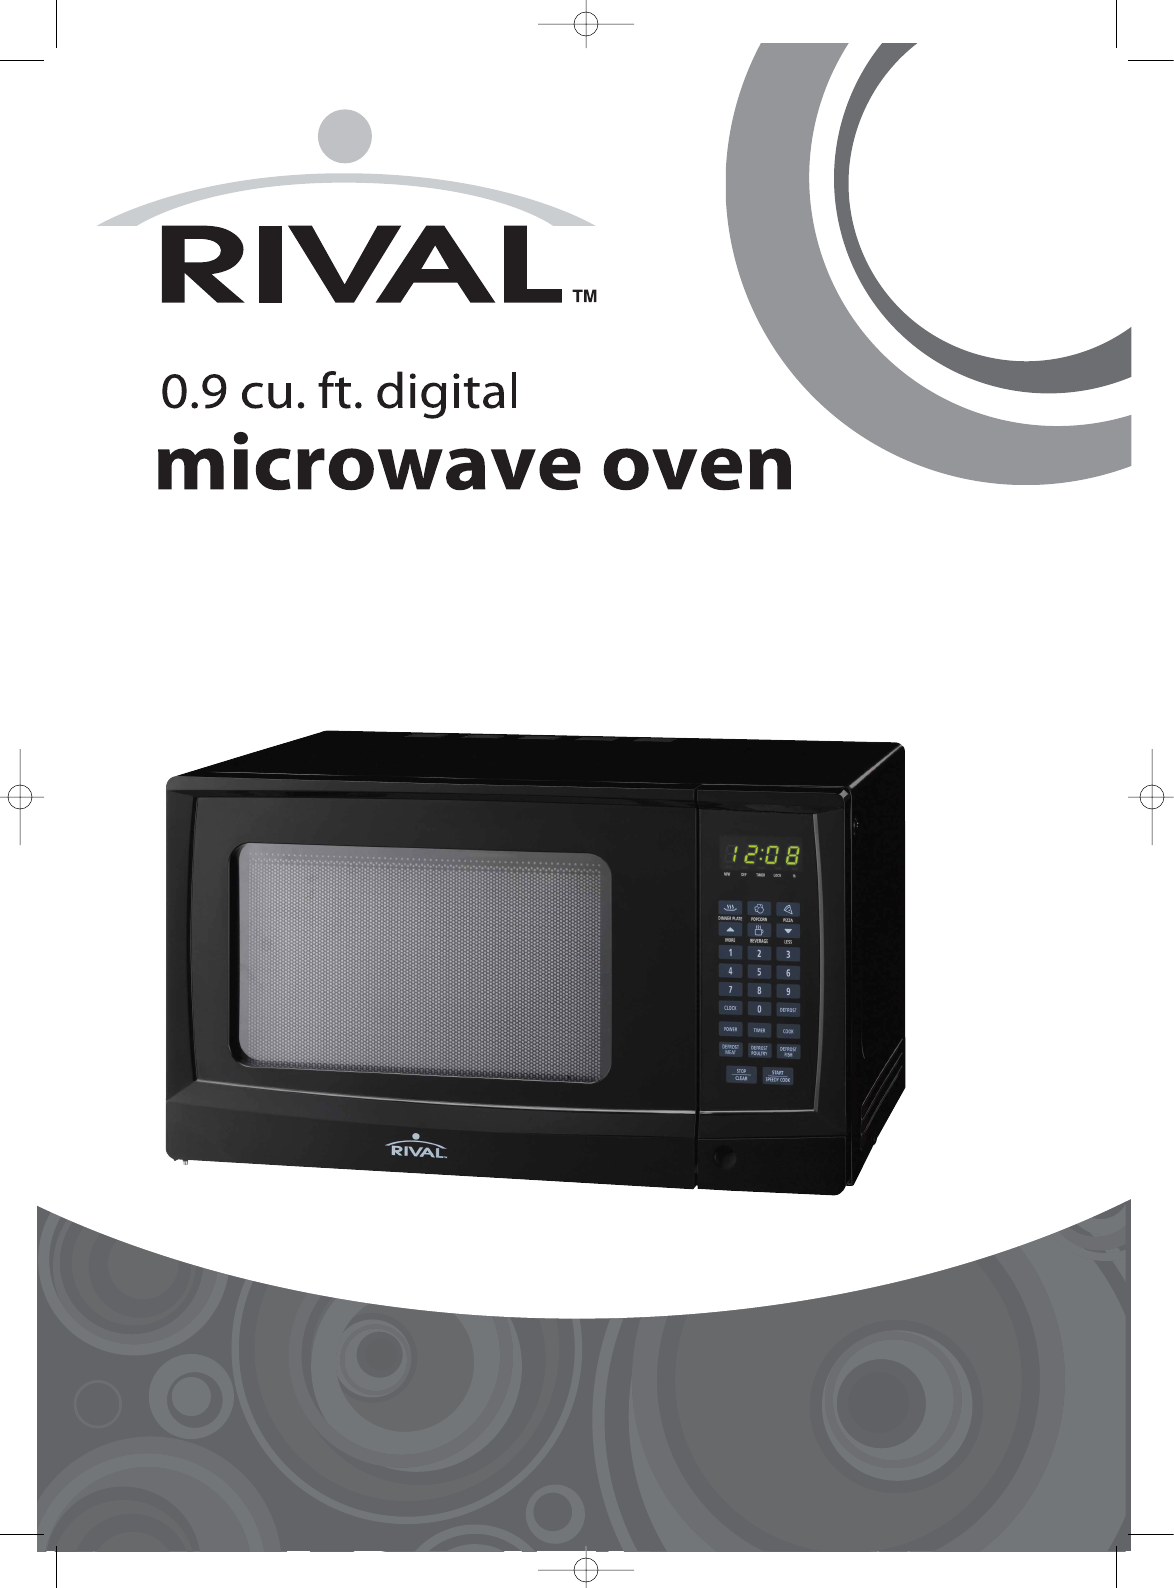 1F64 Wiring Diagram For Rival Microwave | Wiring LibraryWiring Library